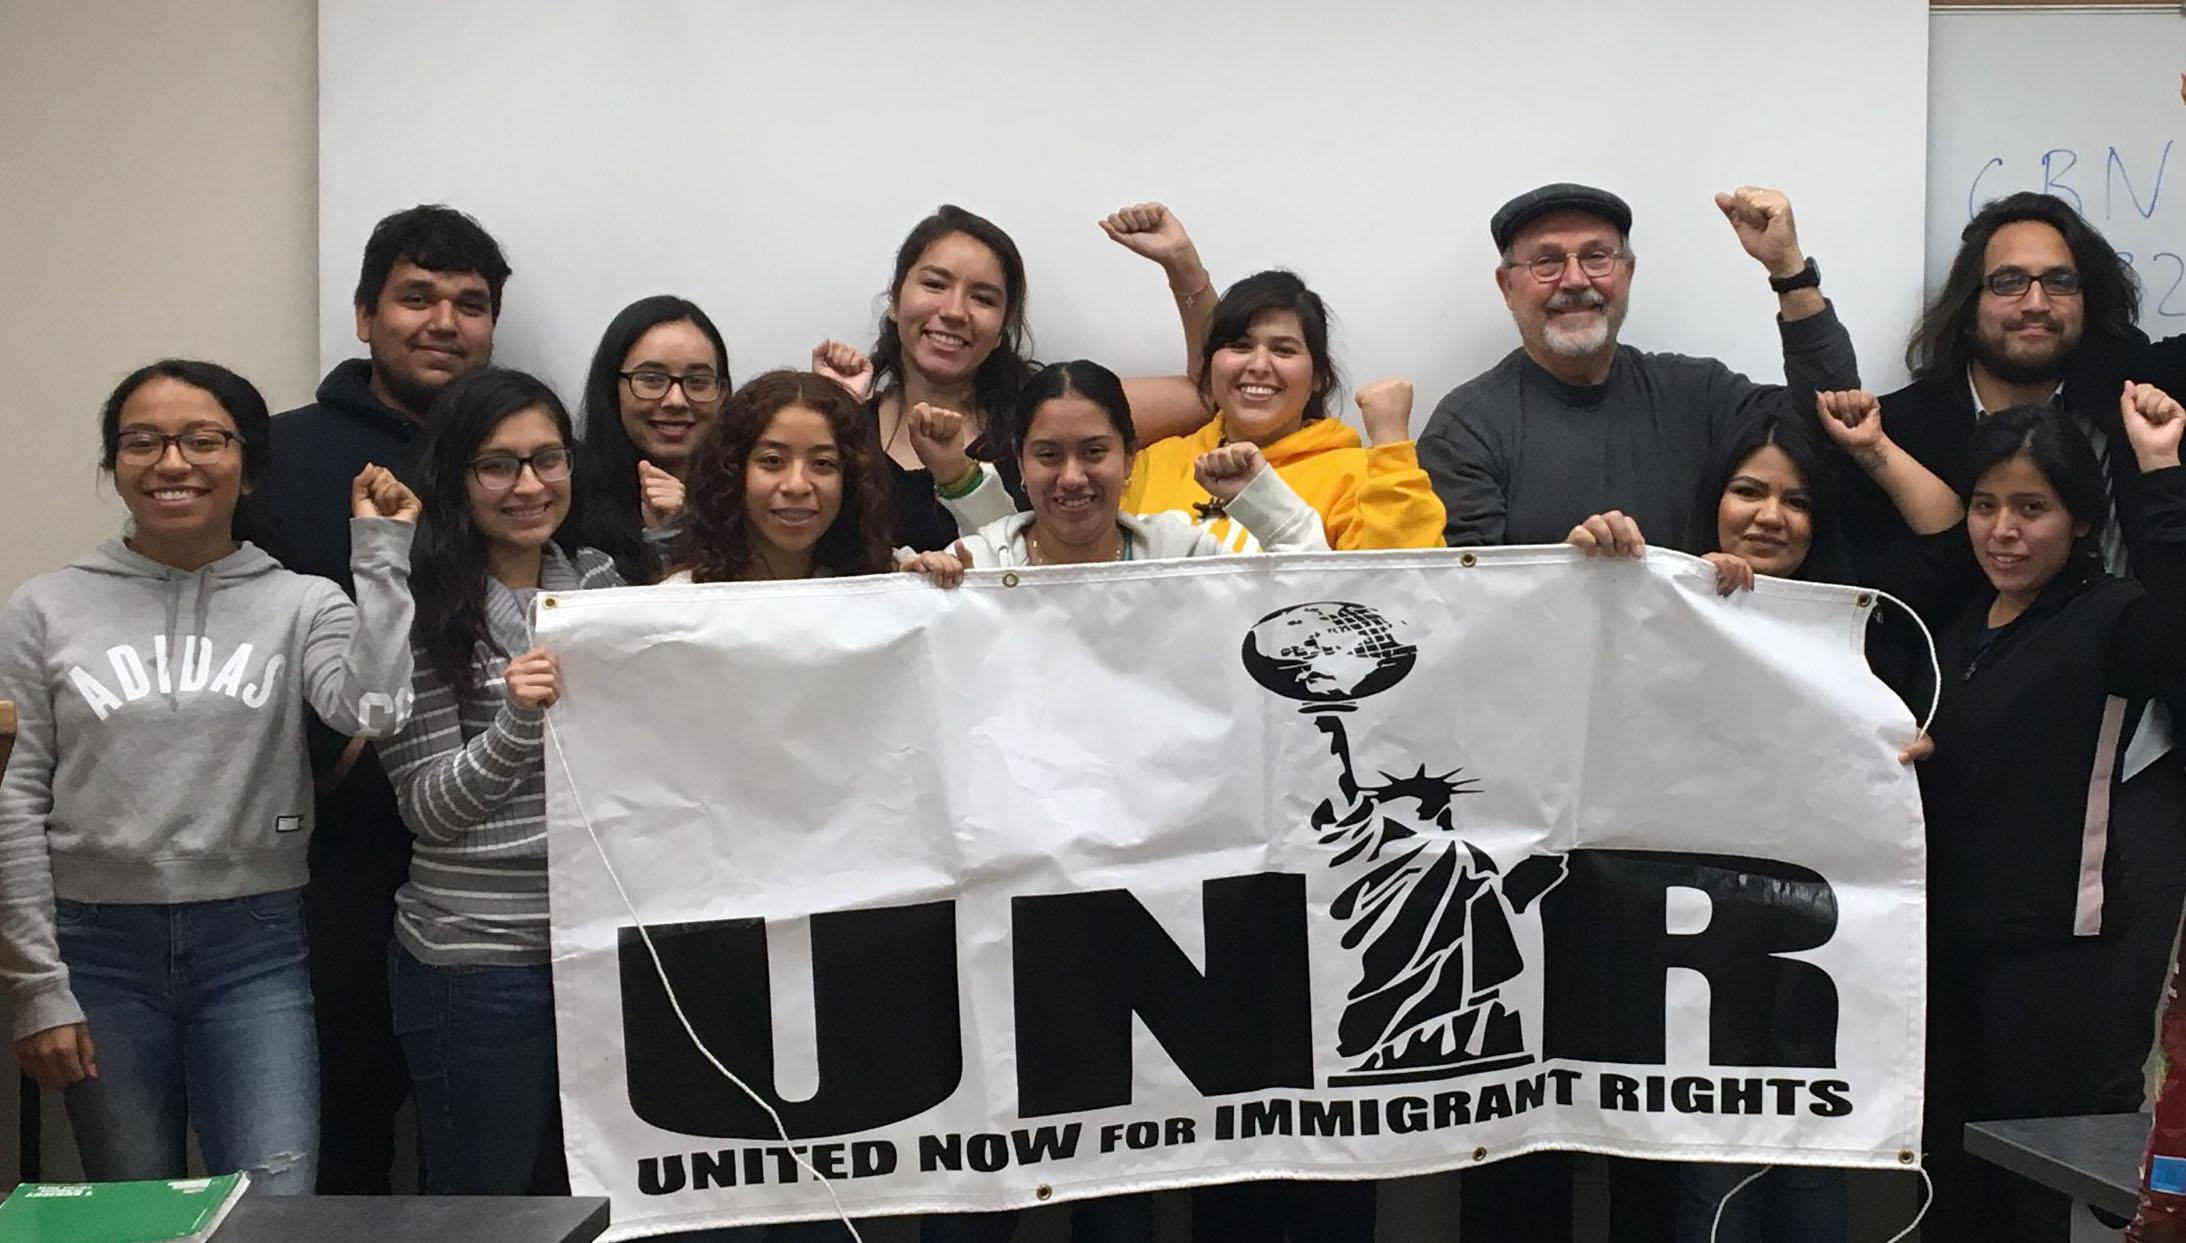 United for immigrant rights